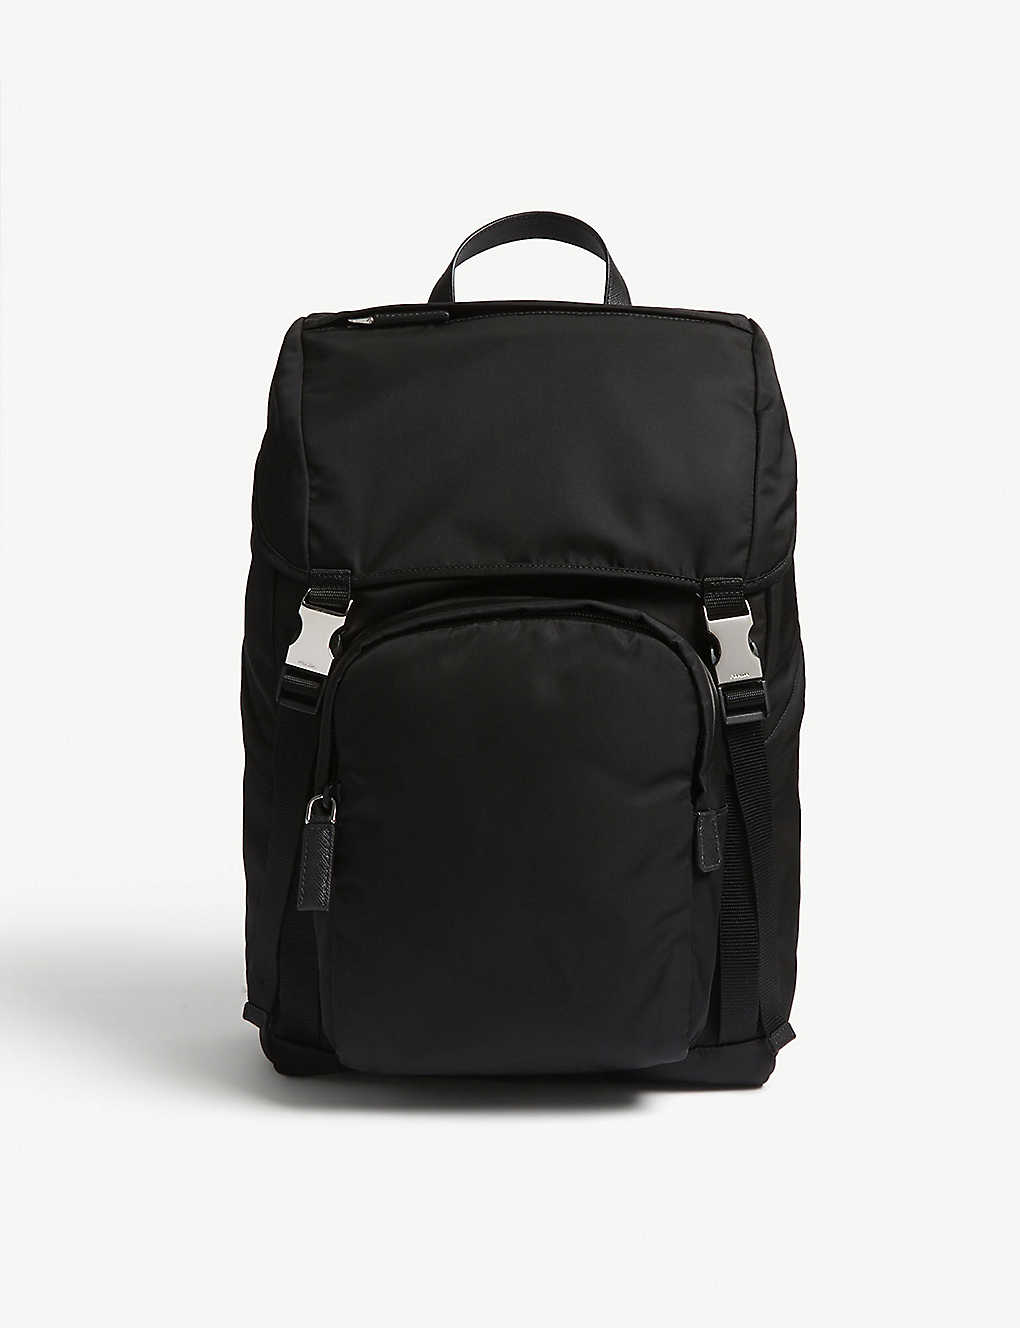 2365a879b788 PRADA - Nylon technical backpack